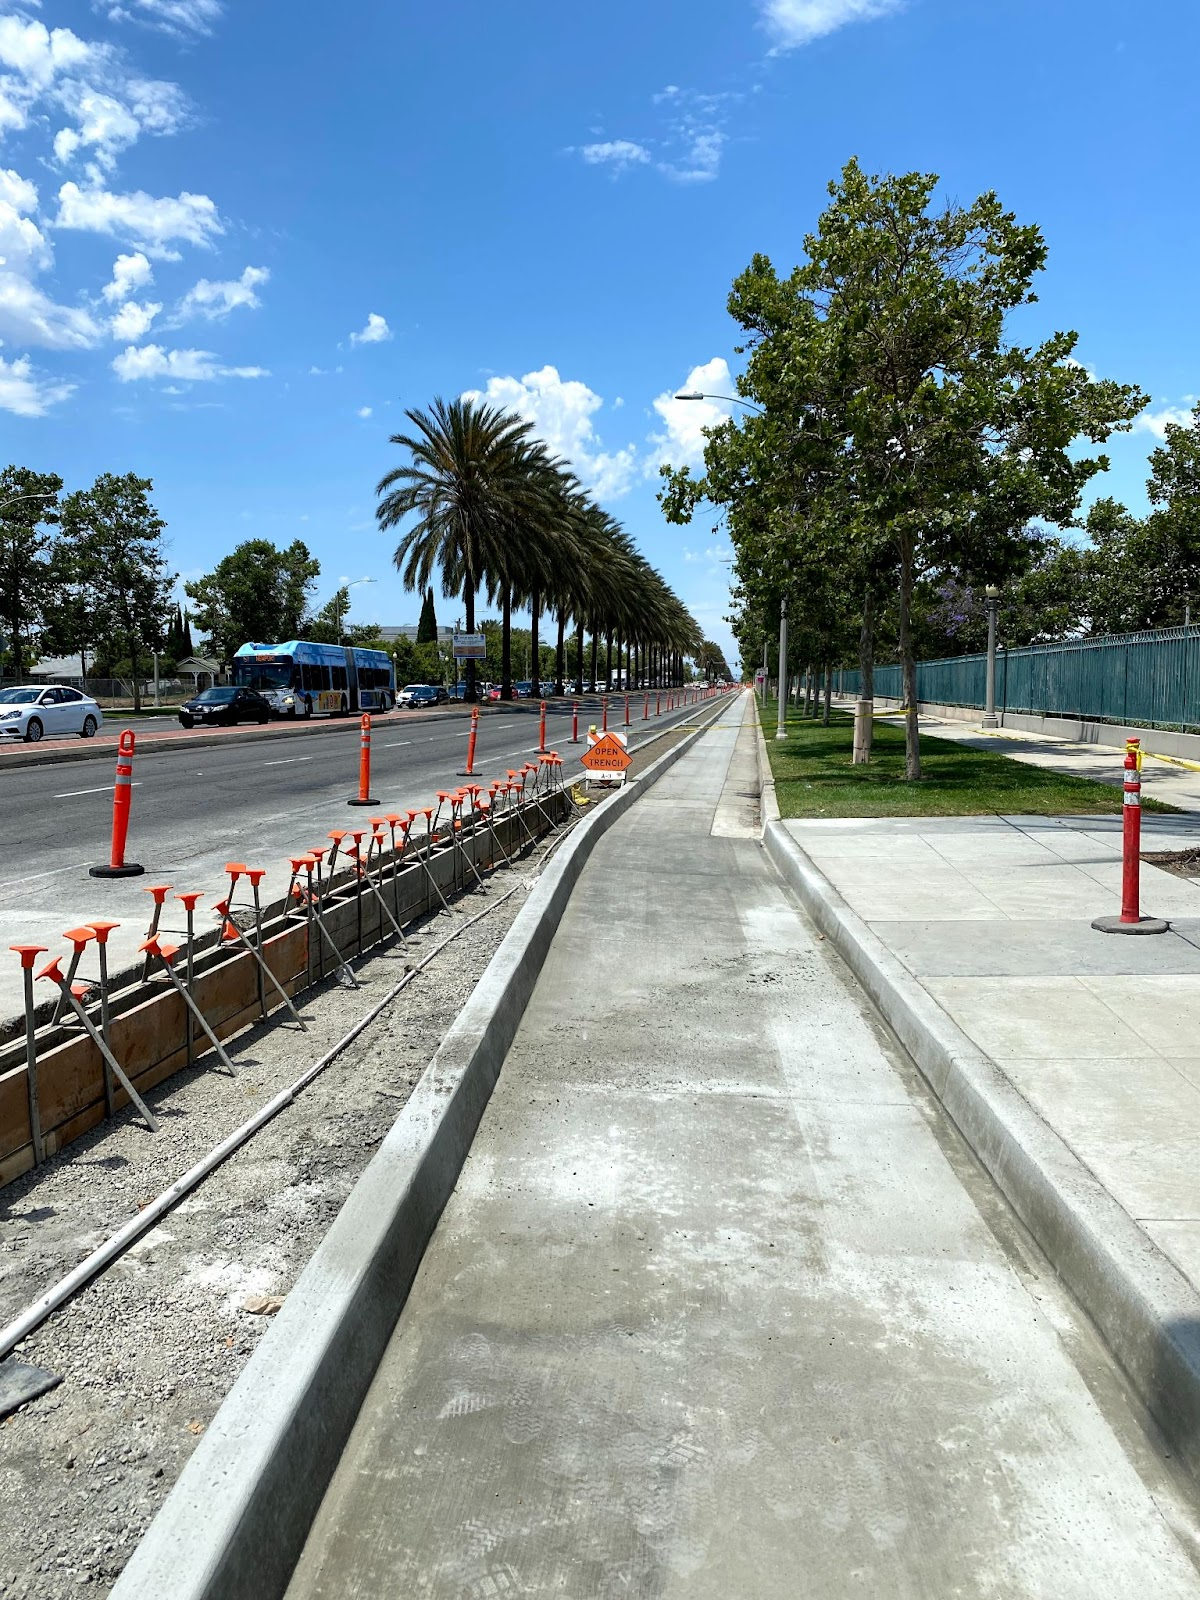 An image of the construction of the Bristol St Bike Lane. Shows a lovely blue sky, a row of palm trees, and the protected bike lane in construction. There are little orange headed thingies sticking up out of the ground on the left side of the image, possible to support the concrete being put in for the median divider to protect the bikes from the cars.